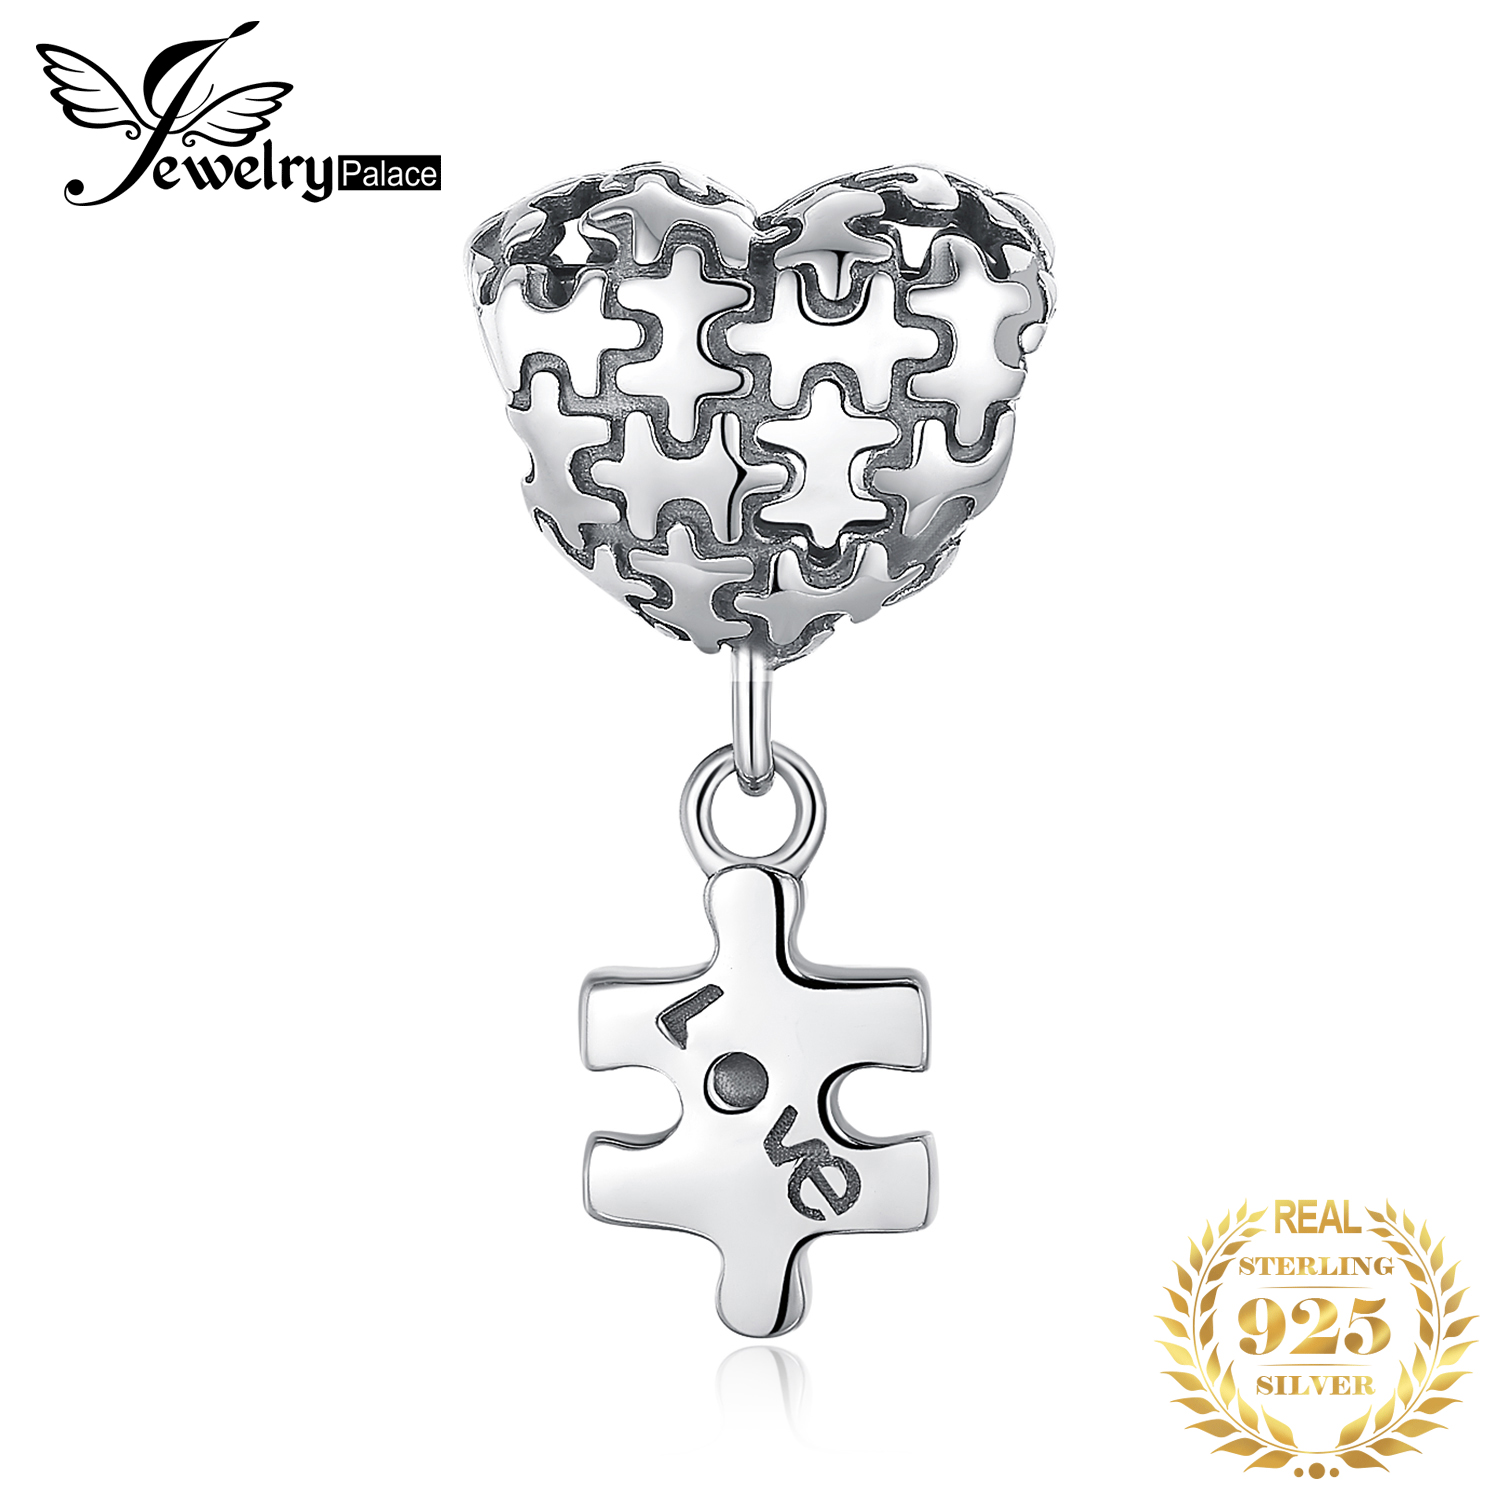 JewelryPalace Jigsaw Puzzle 925 Sterling Silver Beads Charms Silver 925 Original For Bracelet Silver 925 Original Jewelry Making